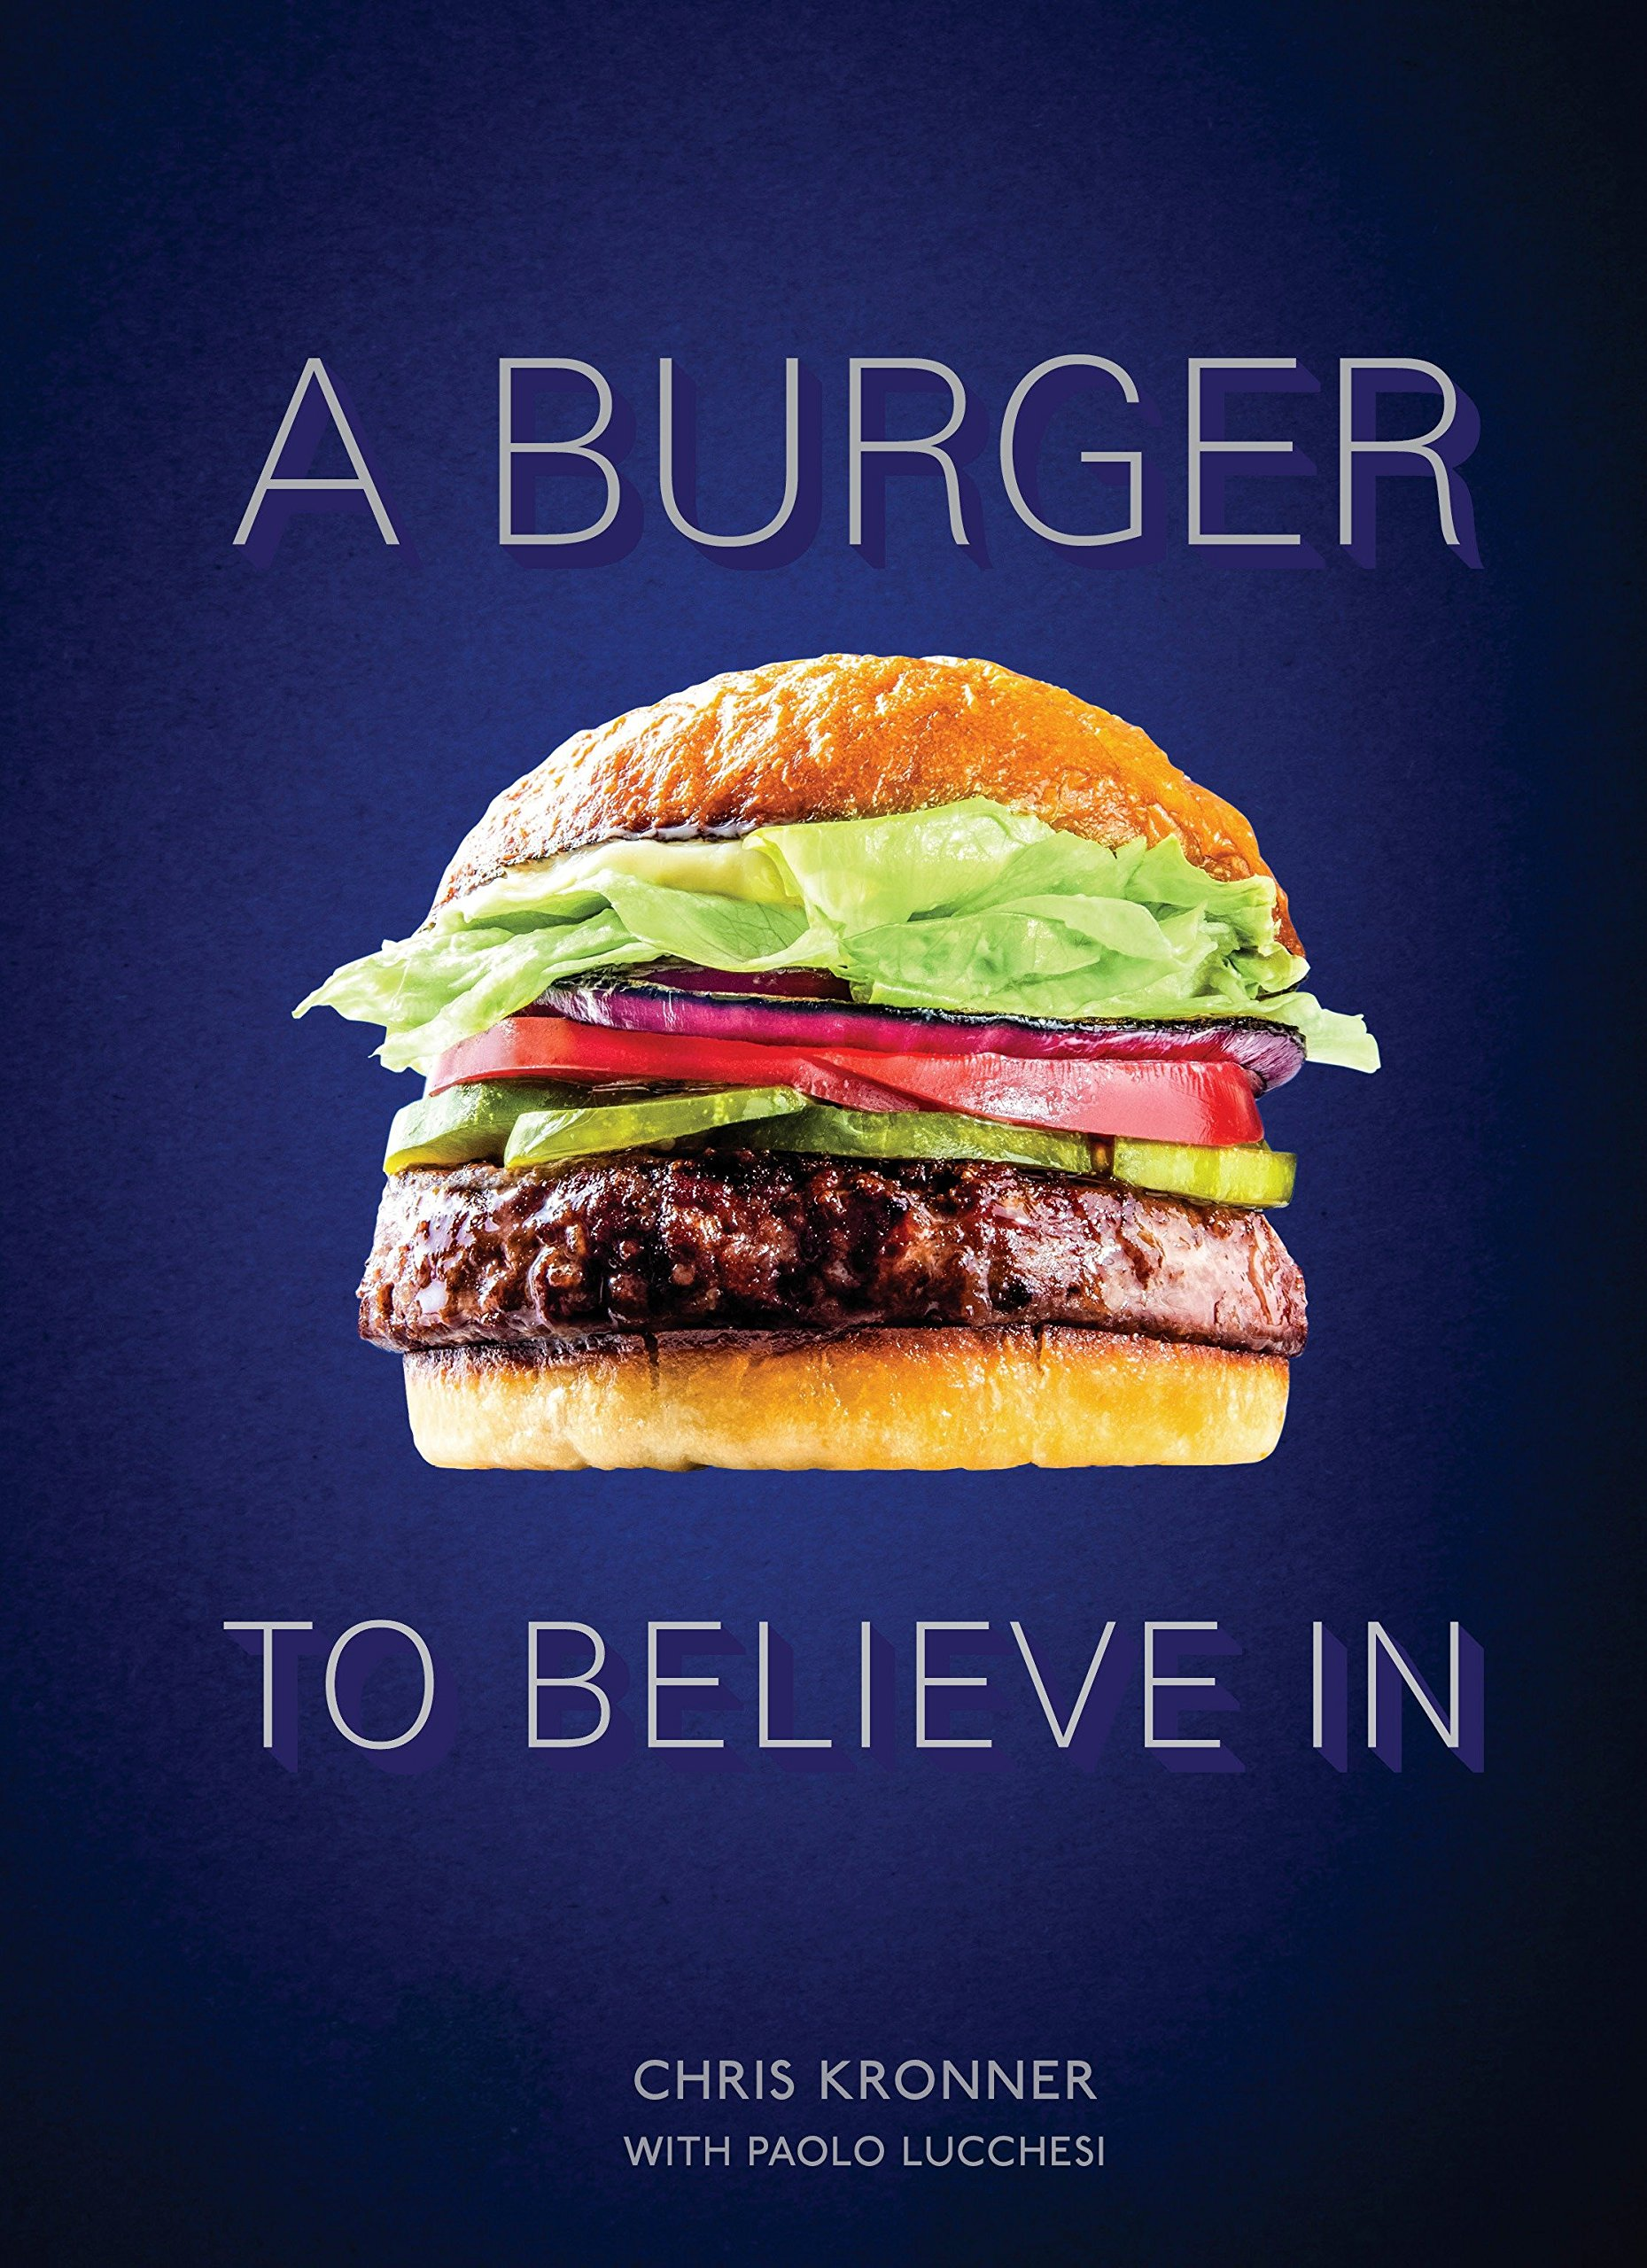 A Burger to Believe In by Chris Kronner with Paolo Lucchesi